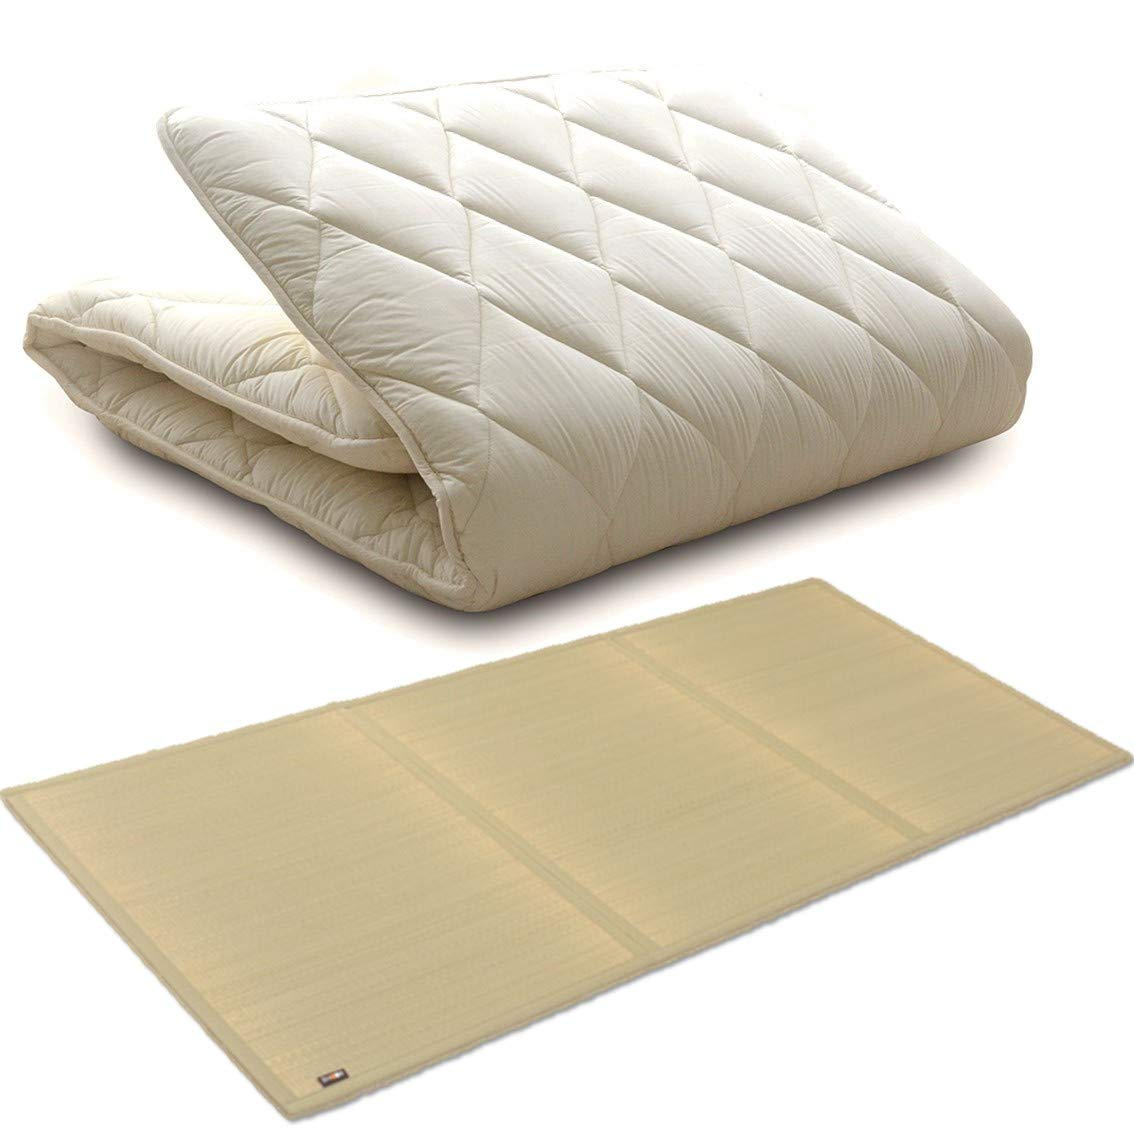 EMOOR Japanese Futon Mattress CLASSE with Igusa (Rush Grass) Tatami Mattress, Full Size (55 x 79). Made in Japan by EMOOR